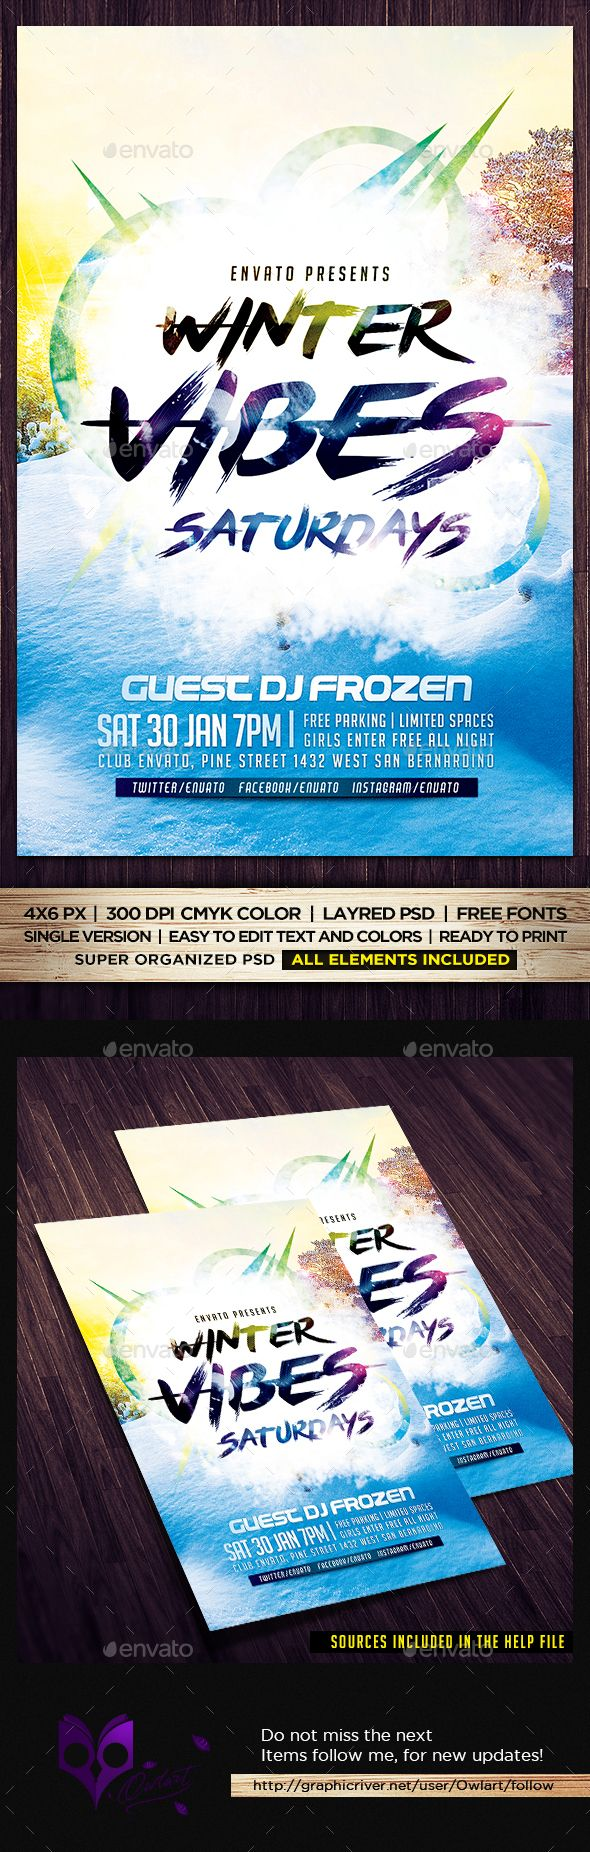 17 best images about marketing postcards flyers winter vibes saturdays flyer